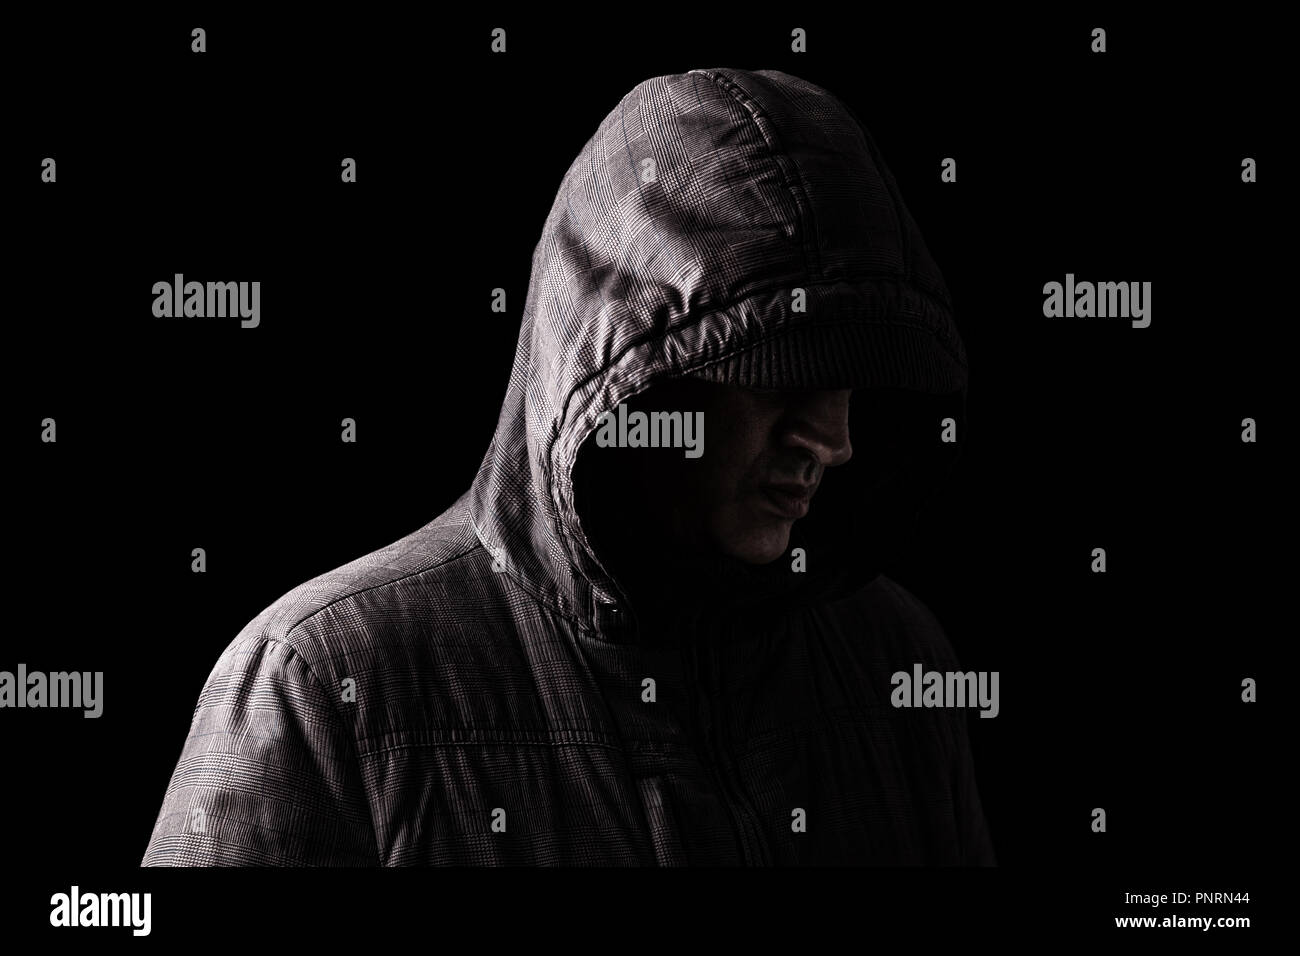 Lonely, depressed and fragile Caucasian or white man hiding face, standing in the darkness. Low key, black background. Concept for loneliness, depress - Stock Image